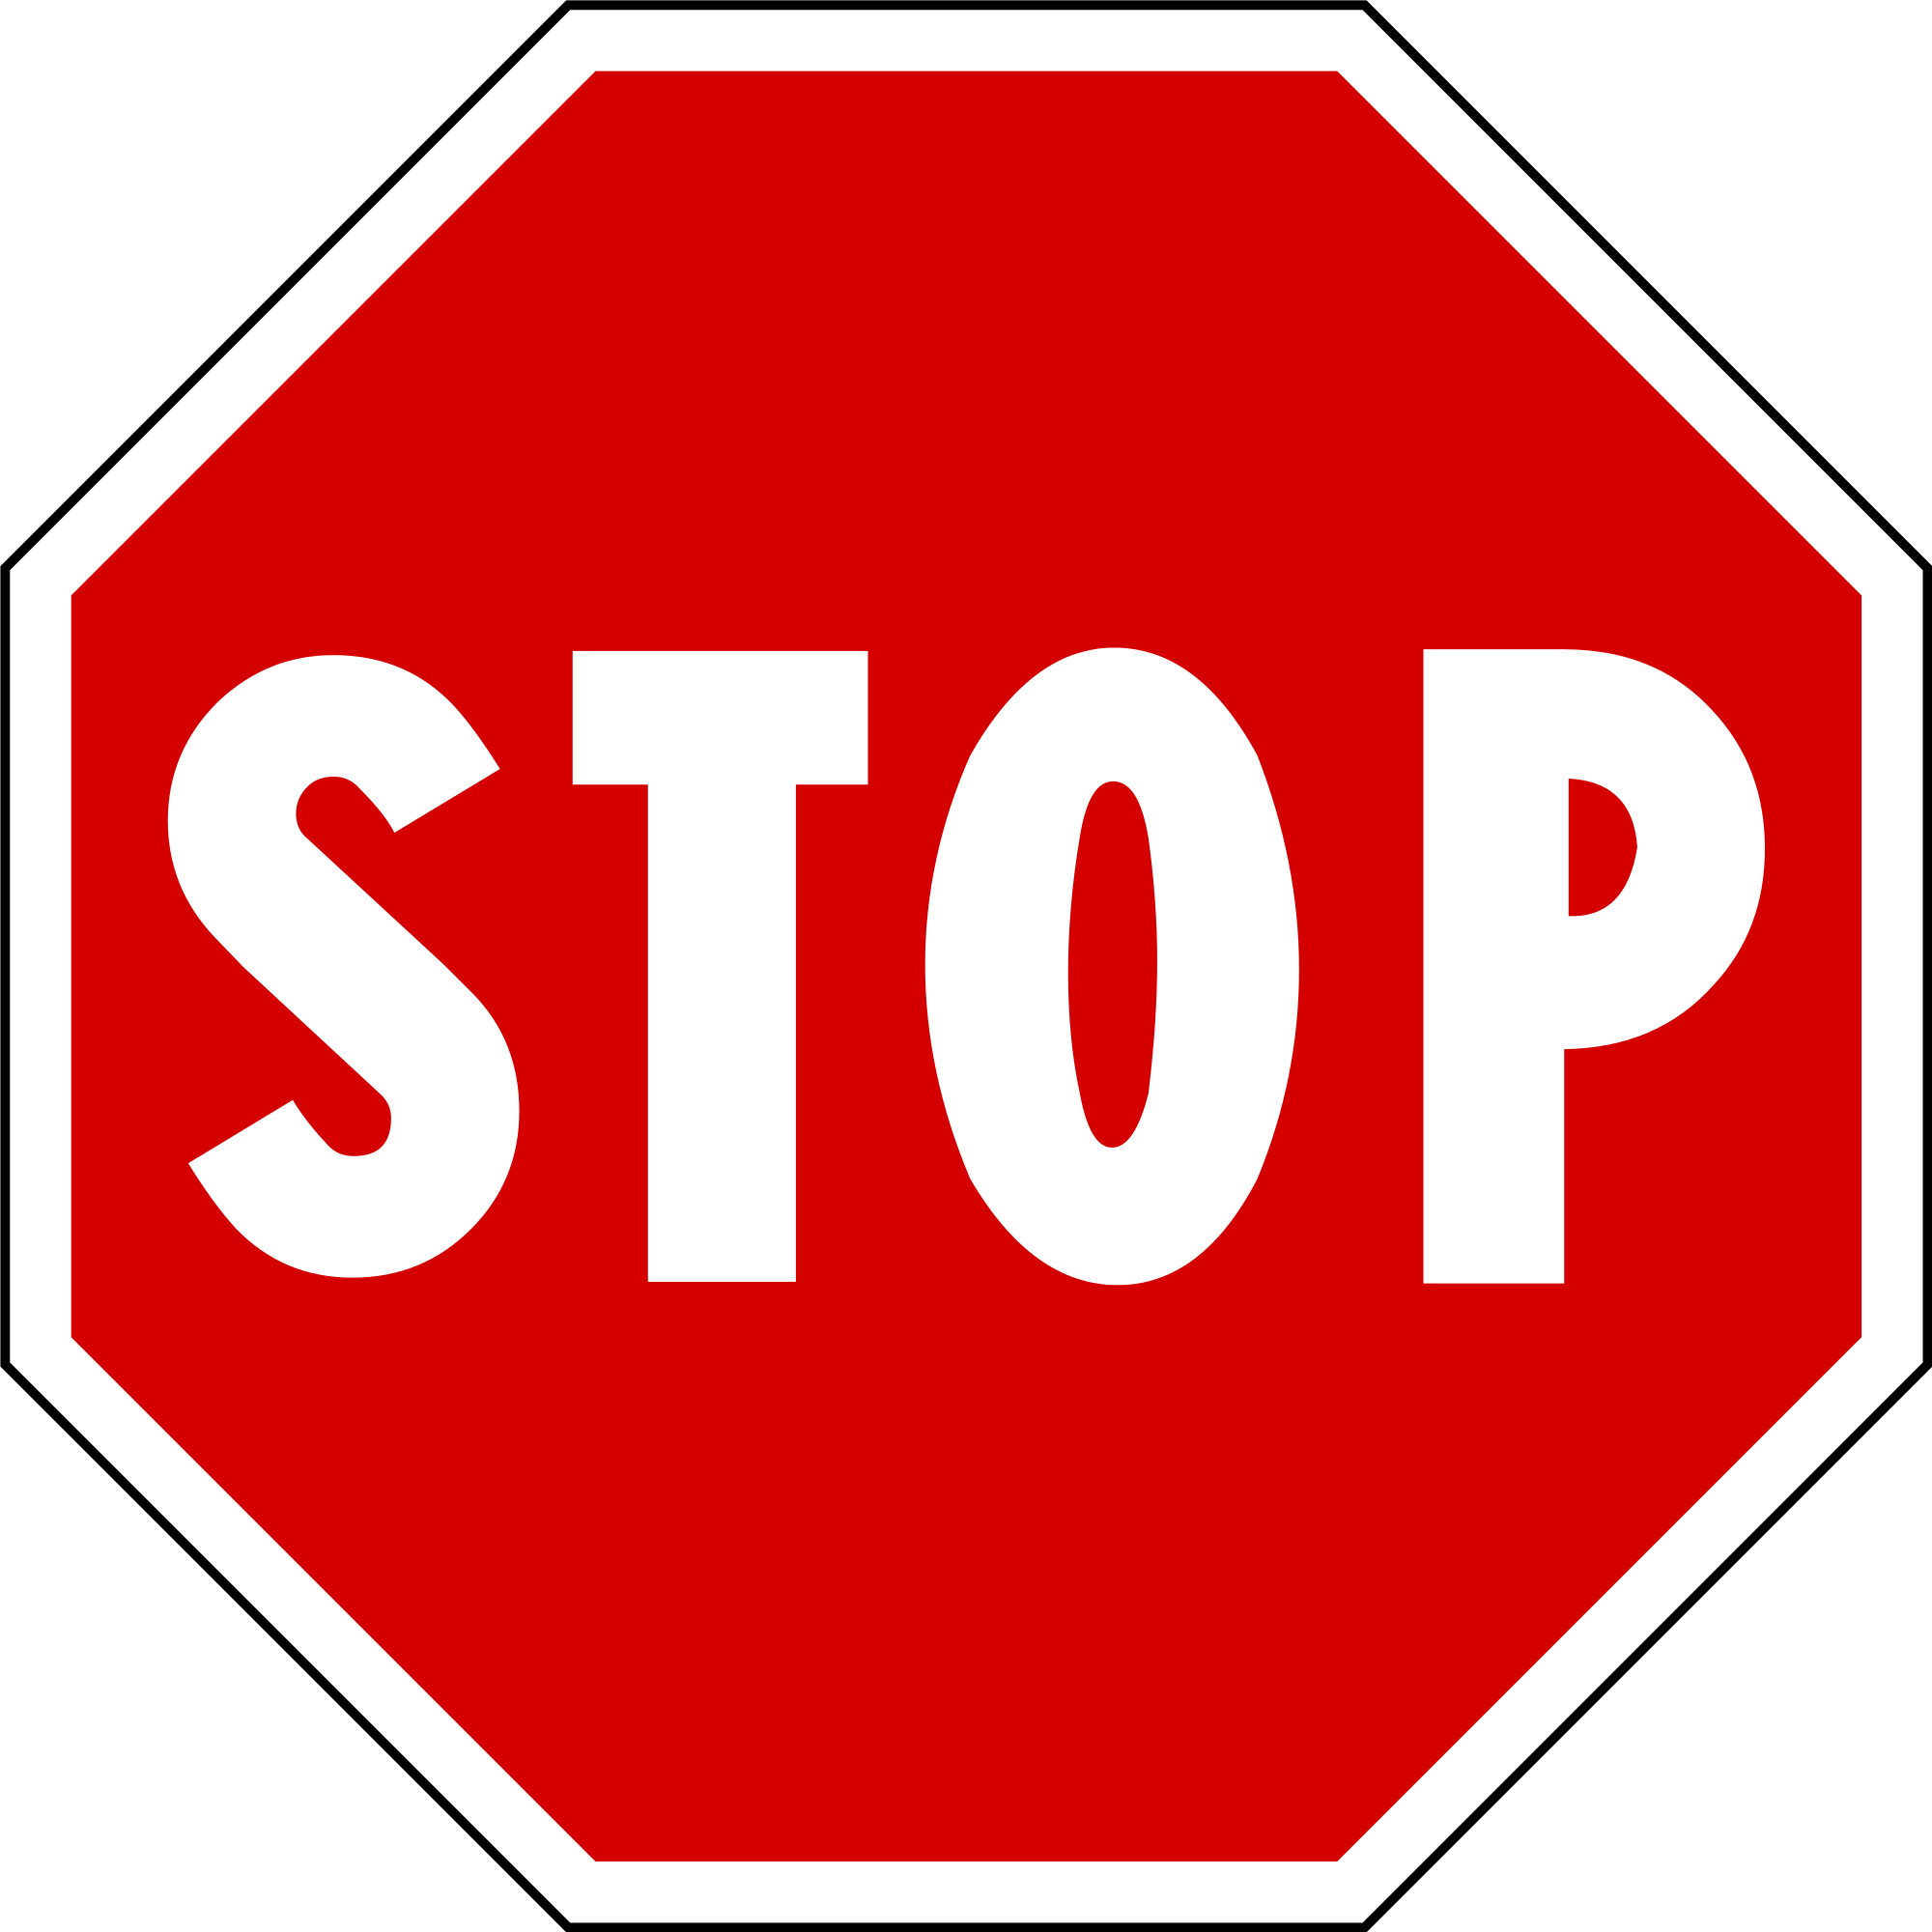 Sign stop PNG images free download